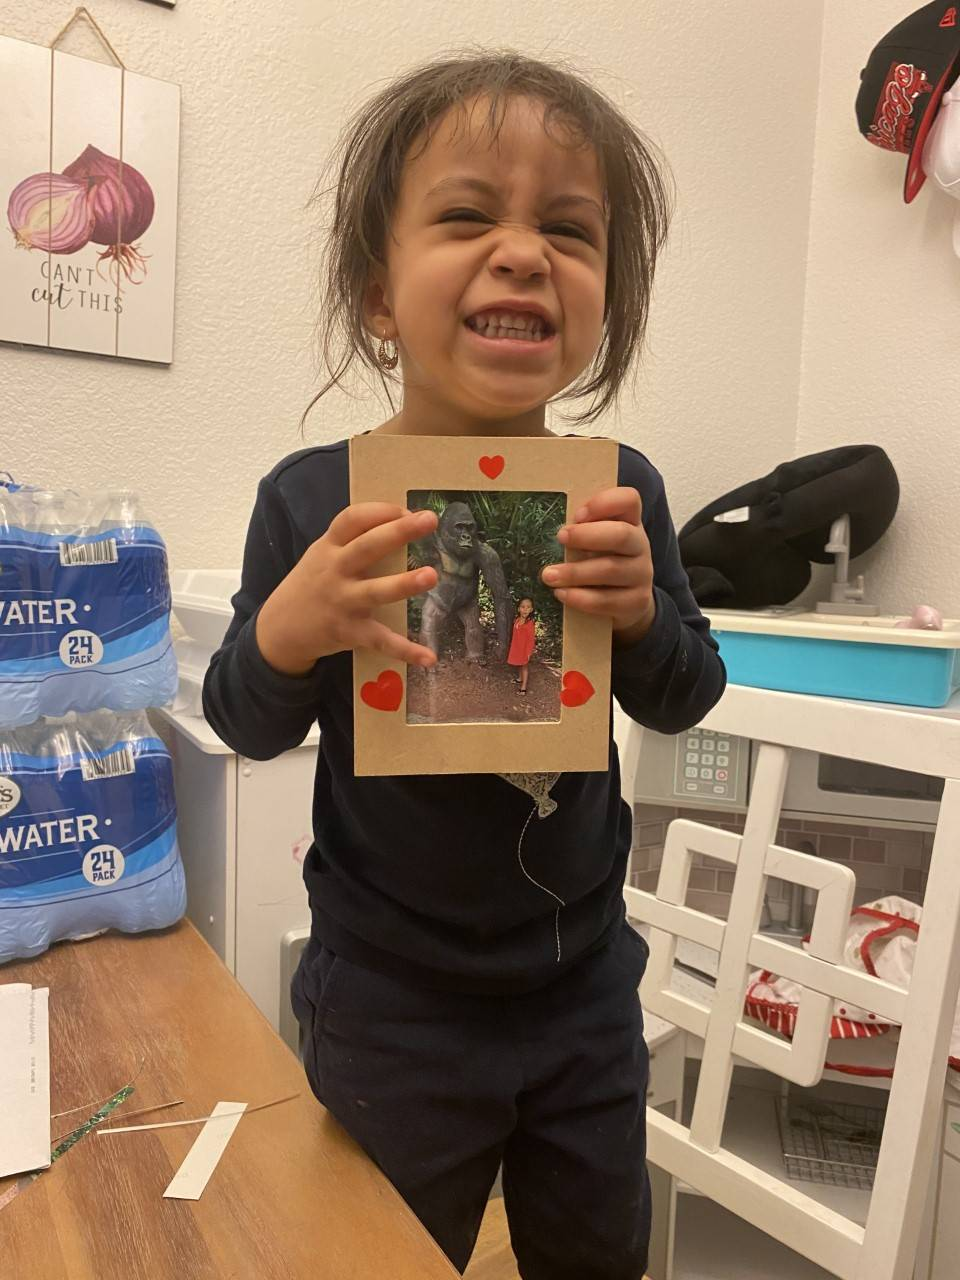 The little girl has finished her picture frame, and holds it up with hearts on the frame.